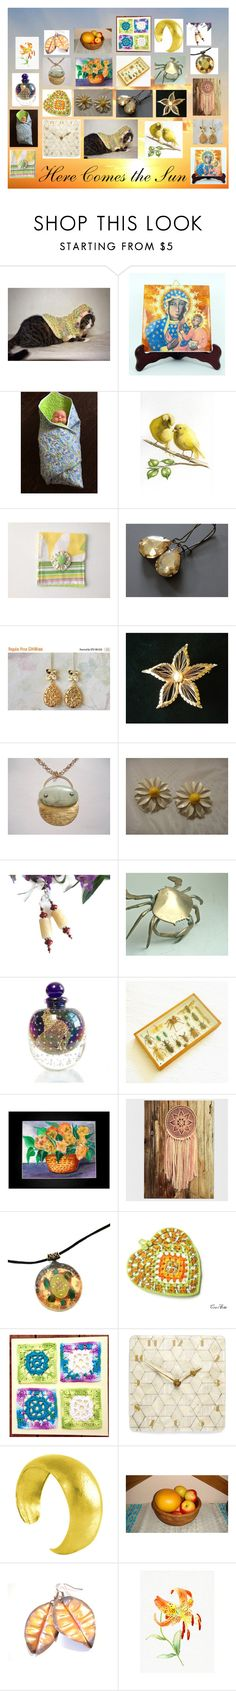 """Here Comes the Sun: Vintage and Handmade Gifts"" by paulinemcewen ❤ liked on Polyvore featuring vintage"